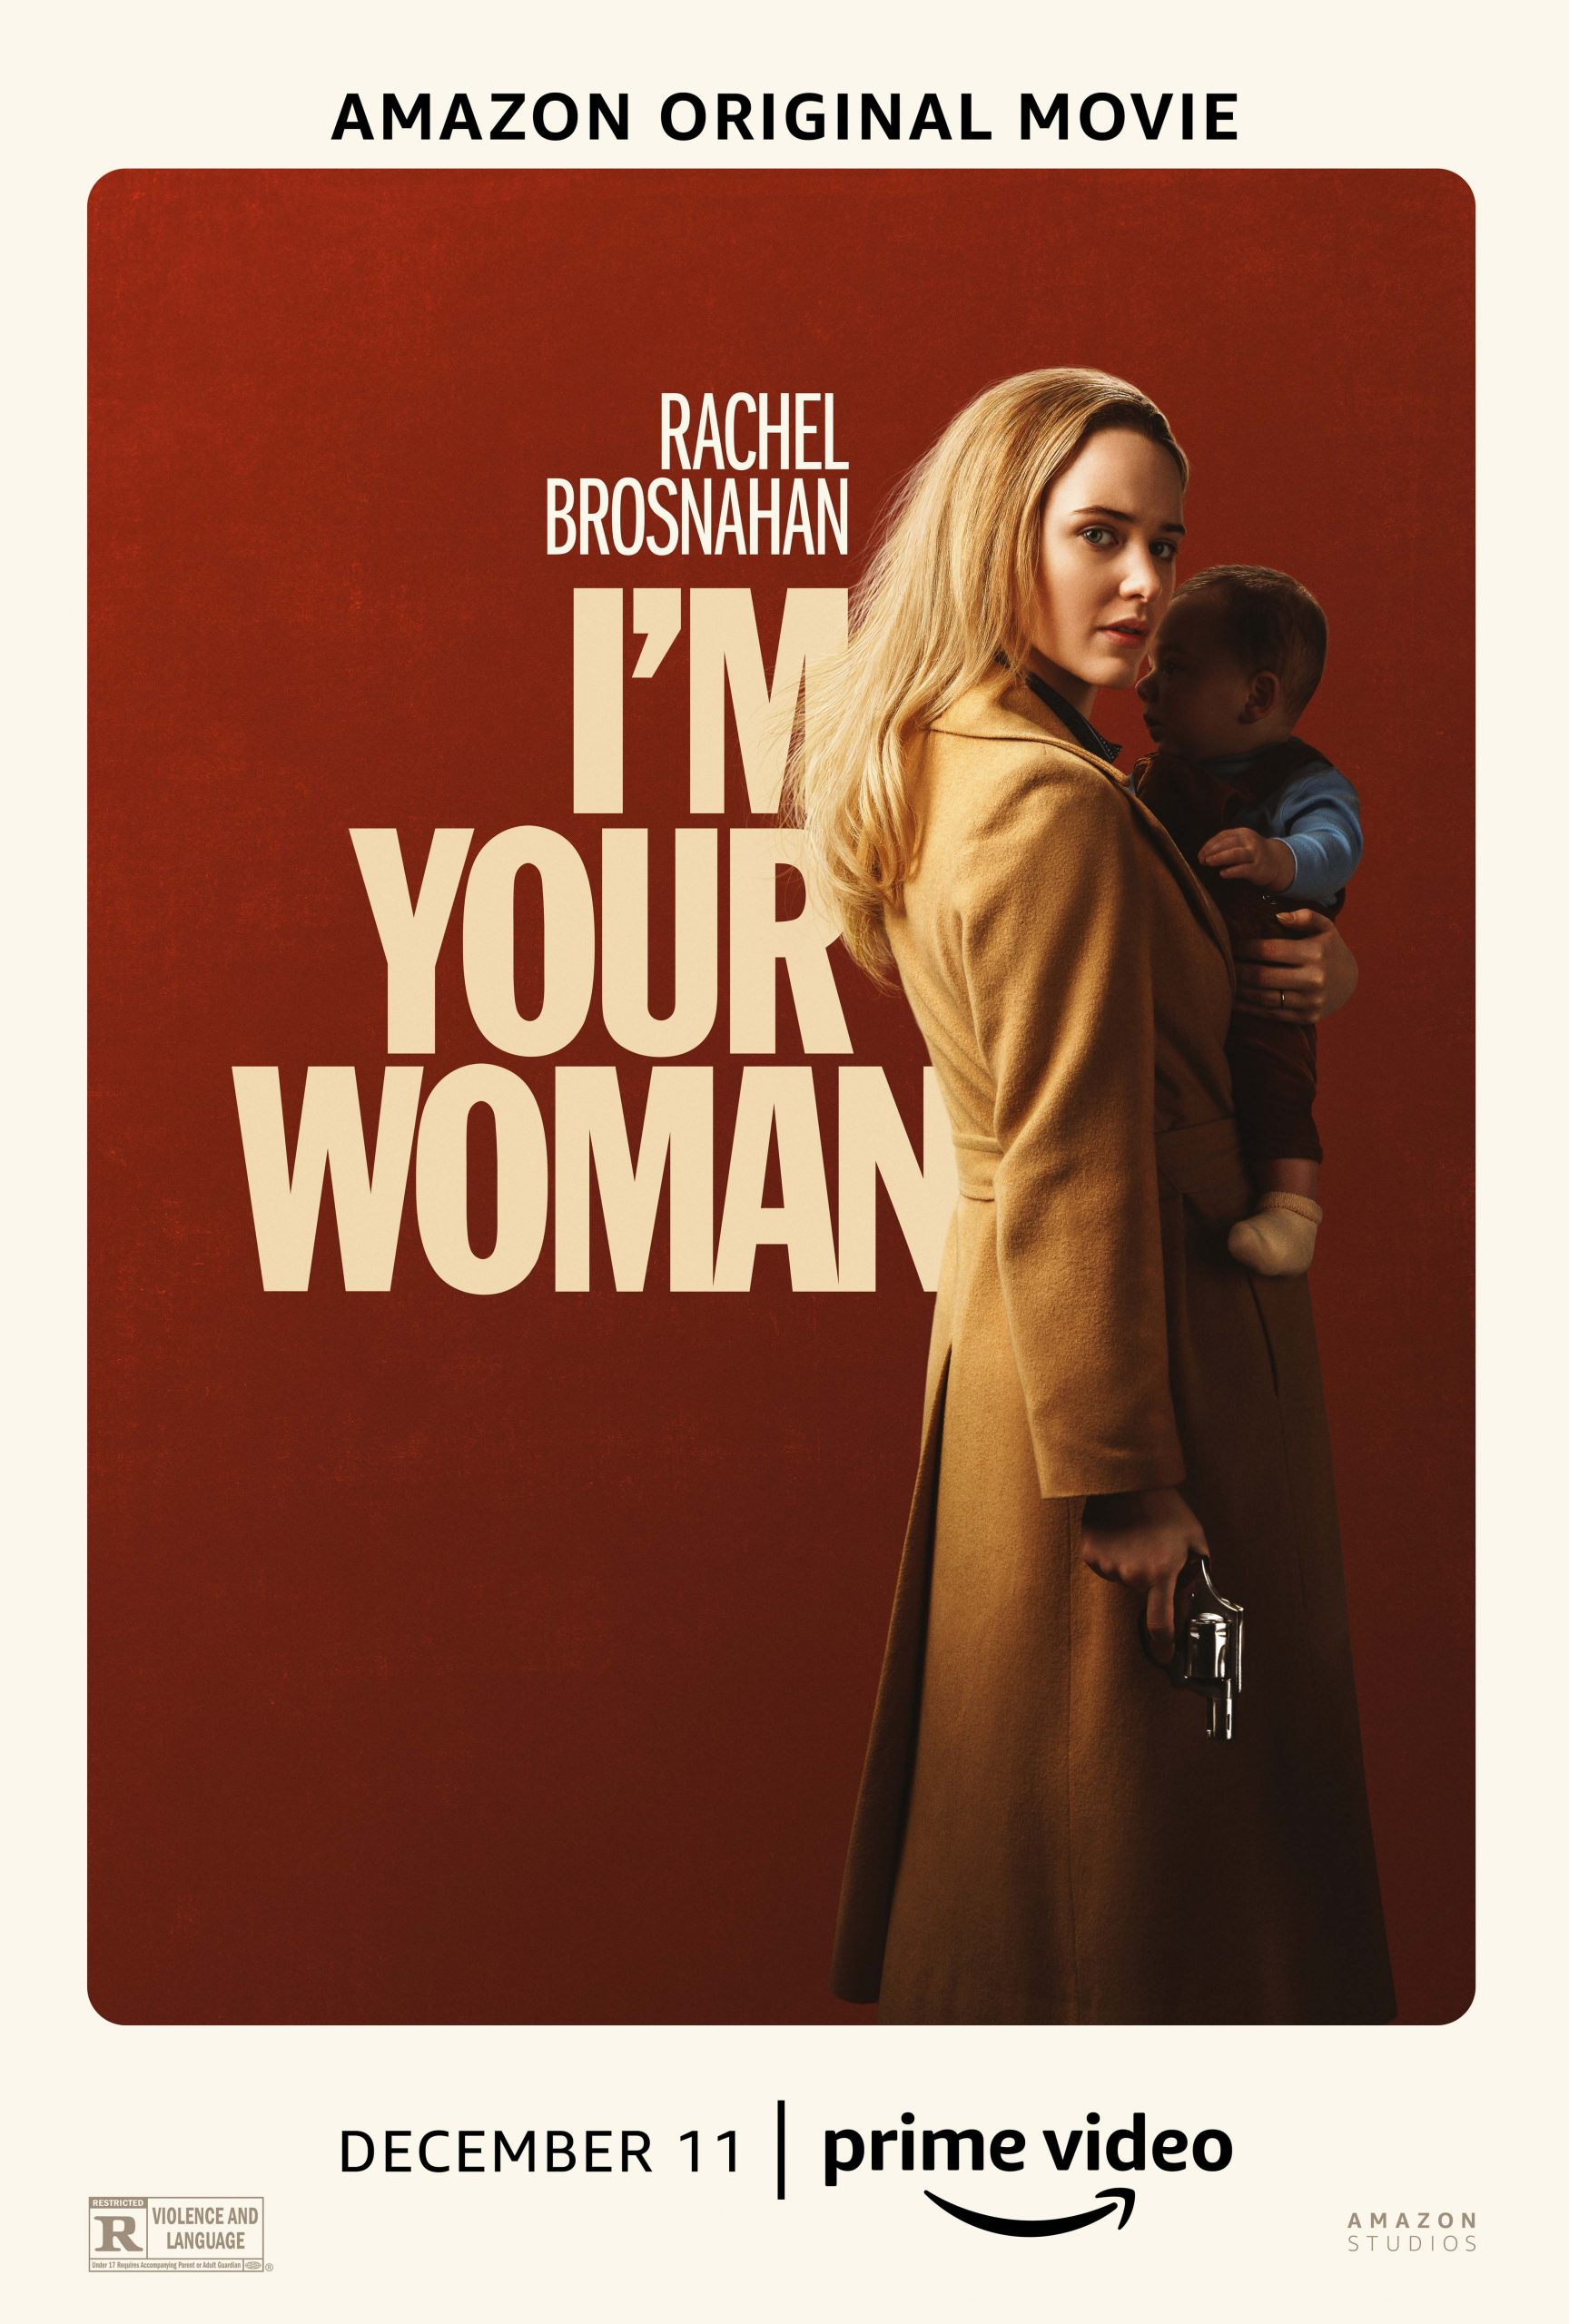 New Movie: I'm Your Woman Starring Rachel Brosnahan